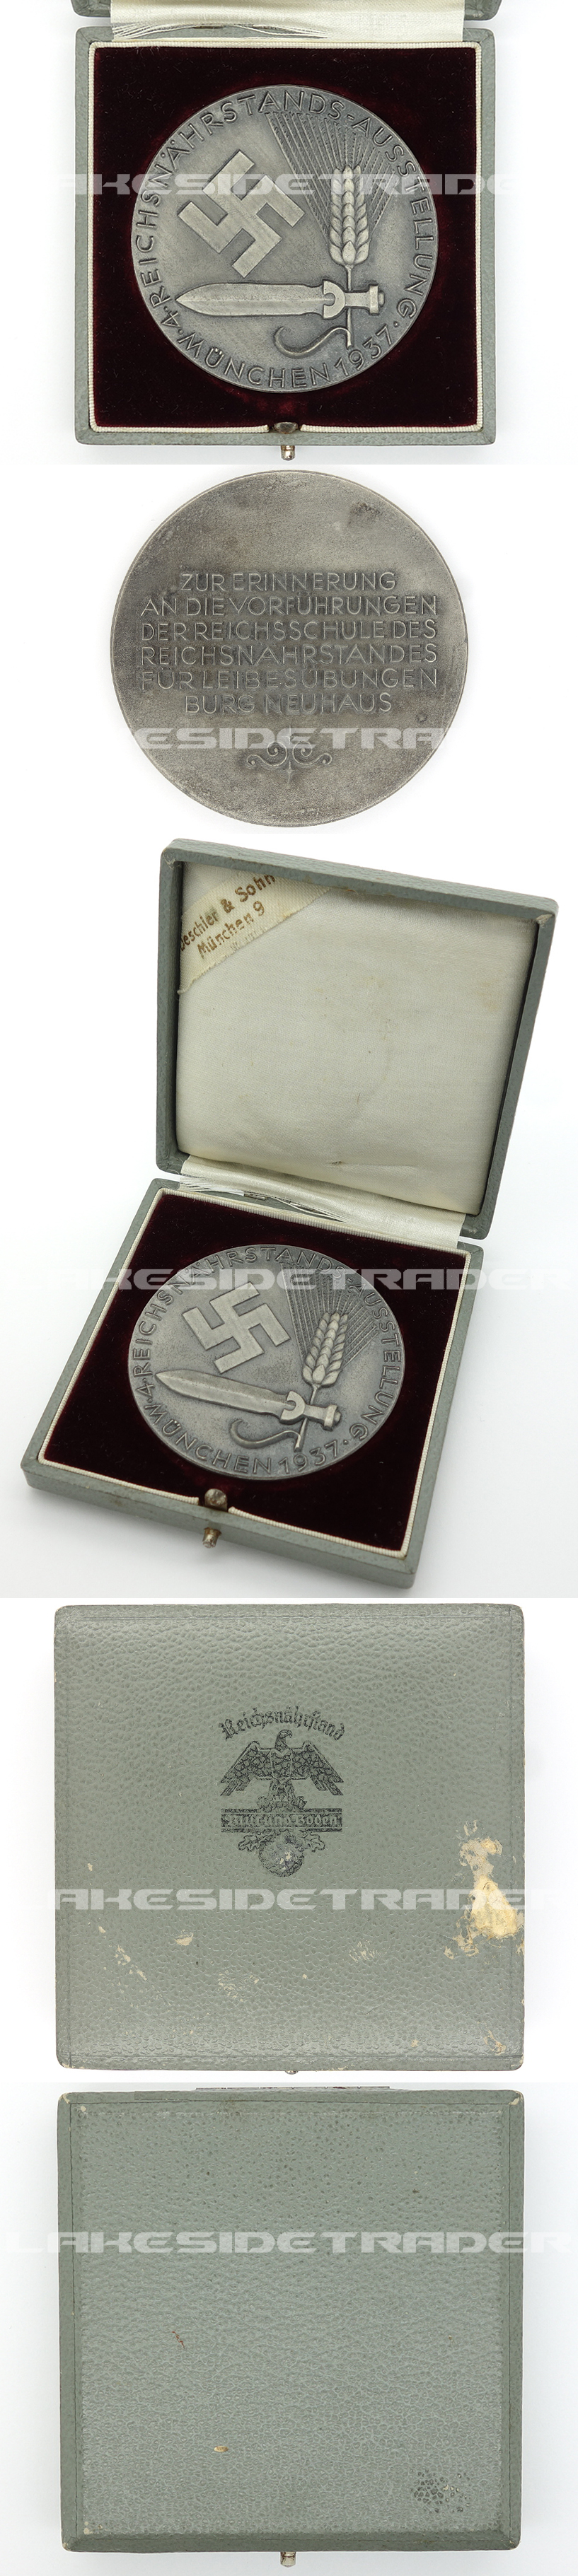 Cased Reichsnährstand Exhibition Non-Portable Award 1937